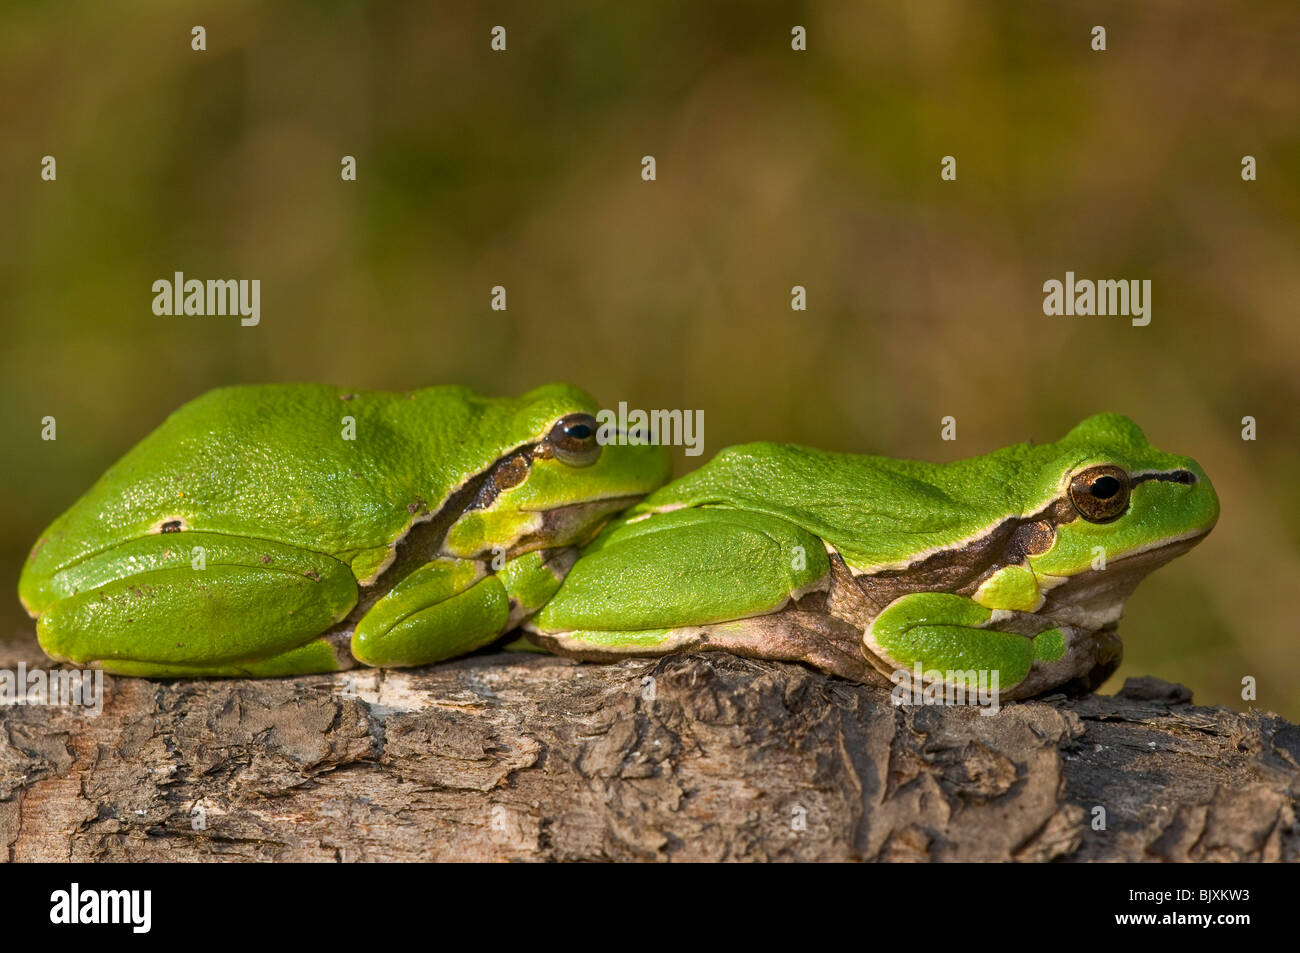 greenbacks - Stock Image